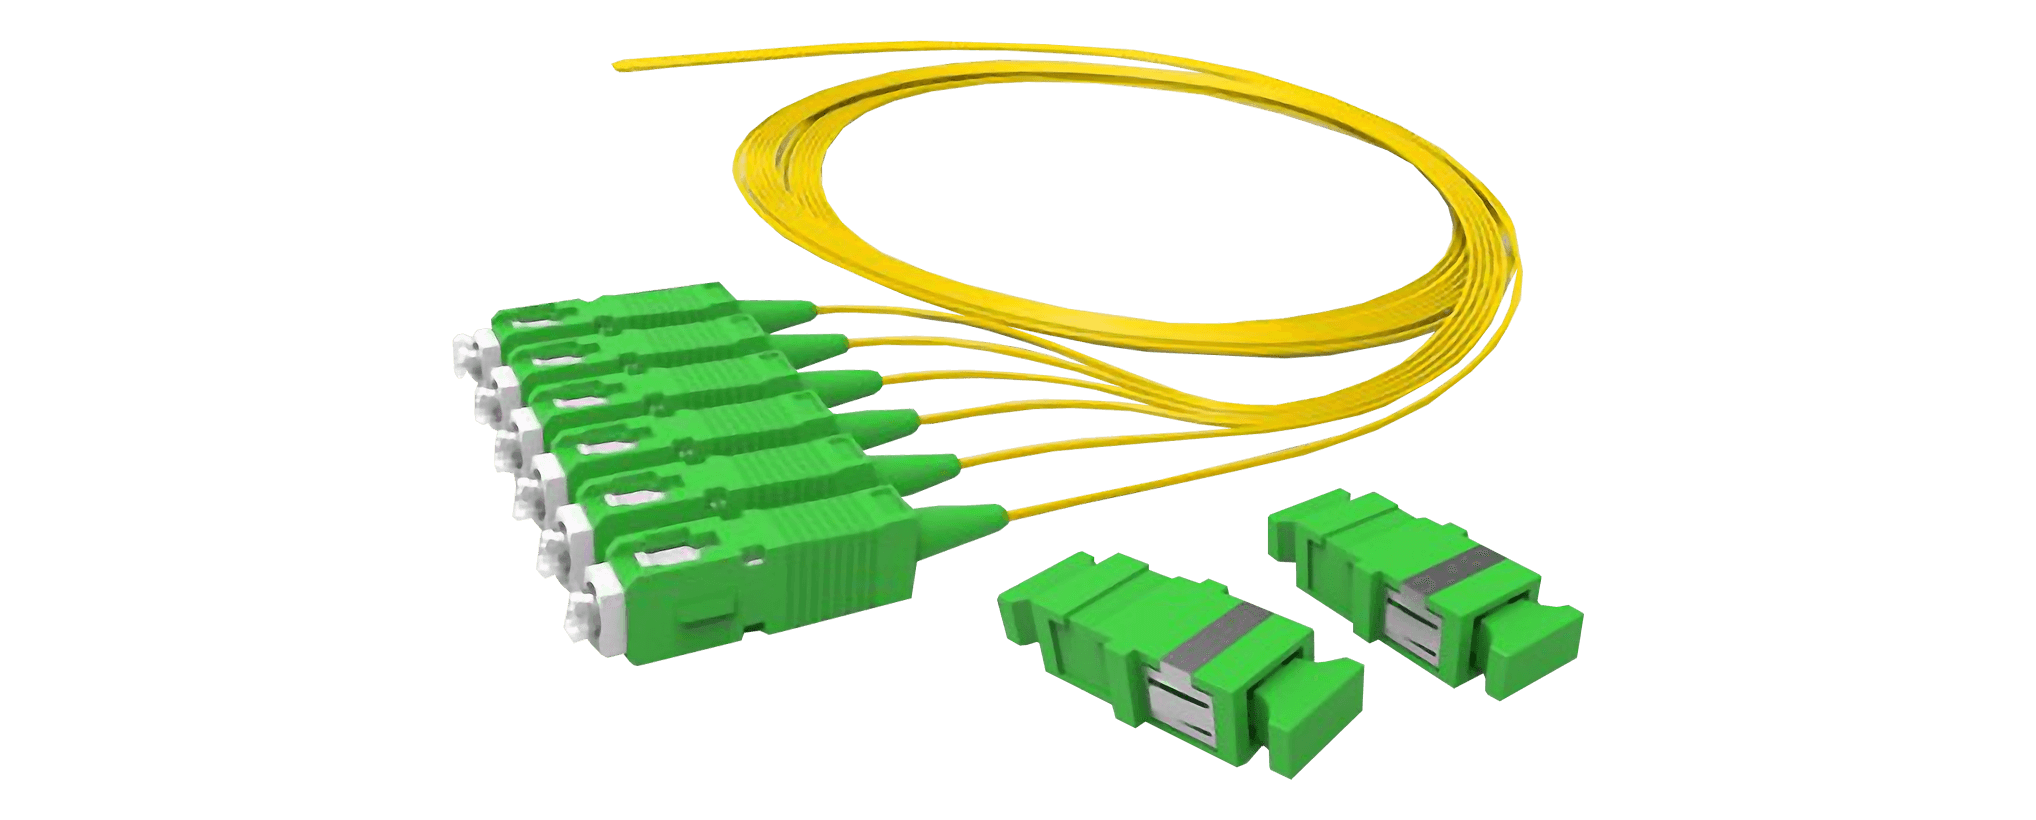 Pigtail and Optical Adapter Kit - Furukawa Central Office Broadband Systems